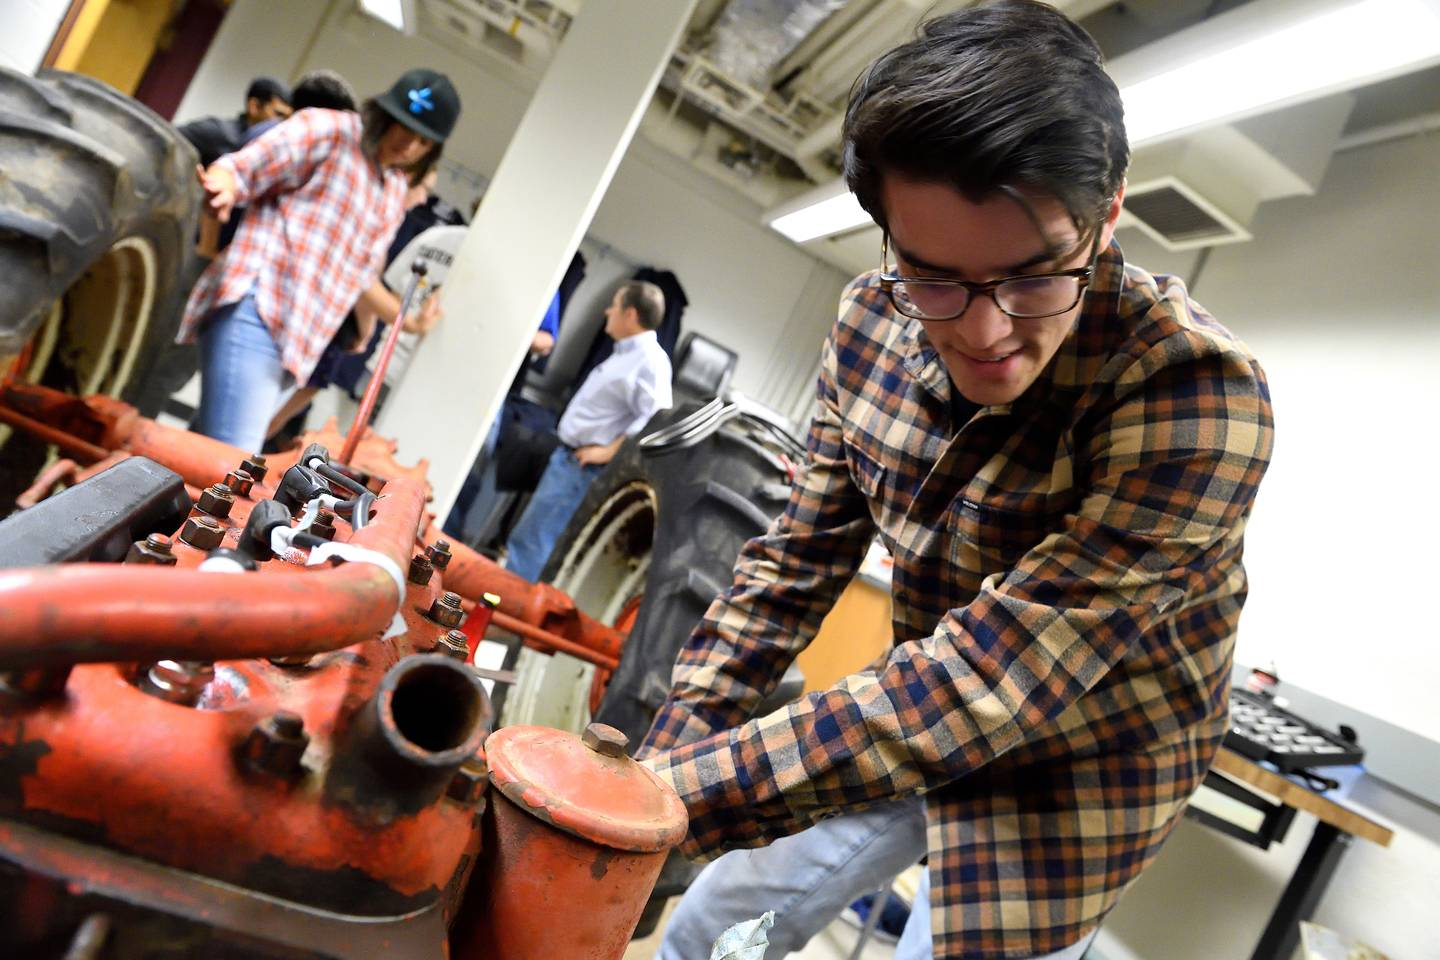 Antique tractor gets students' gears turning | Hub